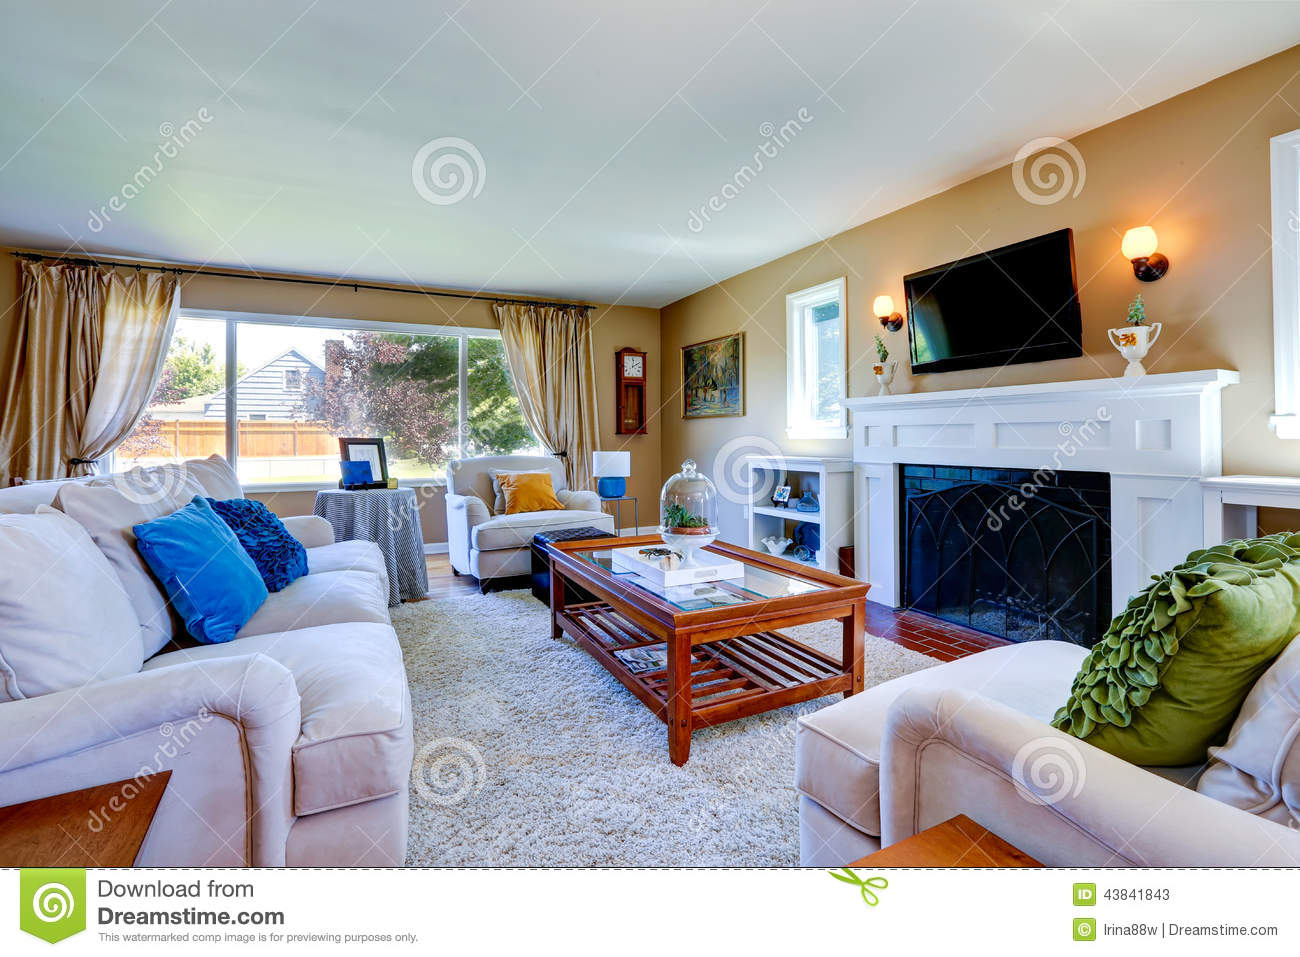 Beautiful Living Room Interior With Cozy Fireplace Stock Photo Image 43841843